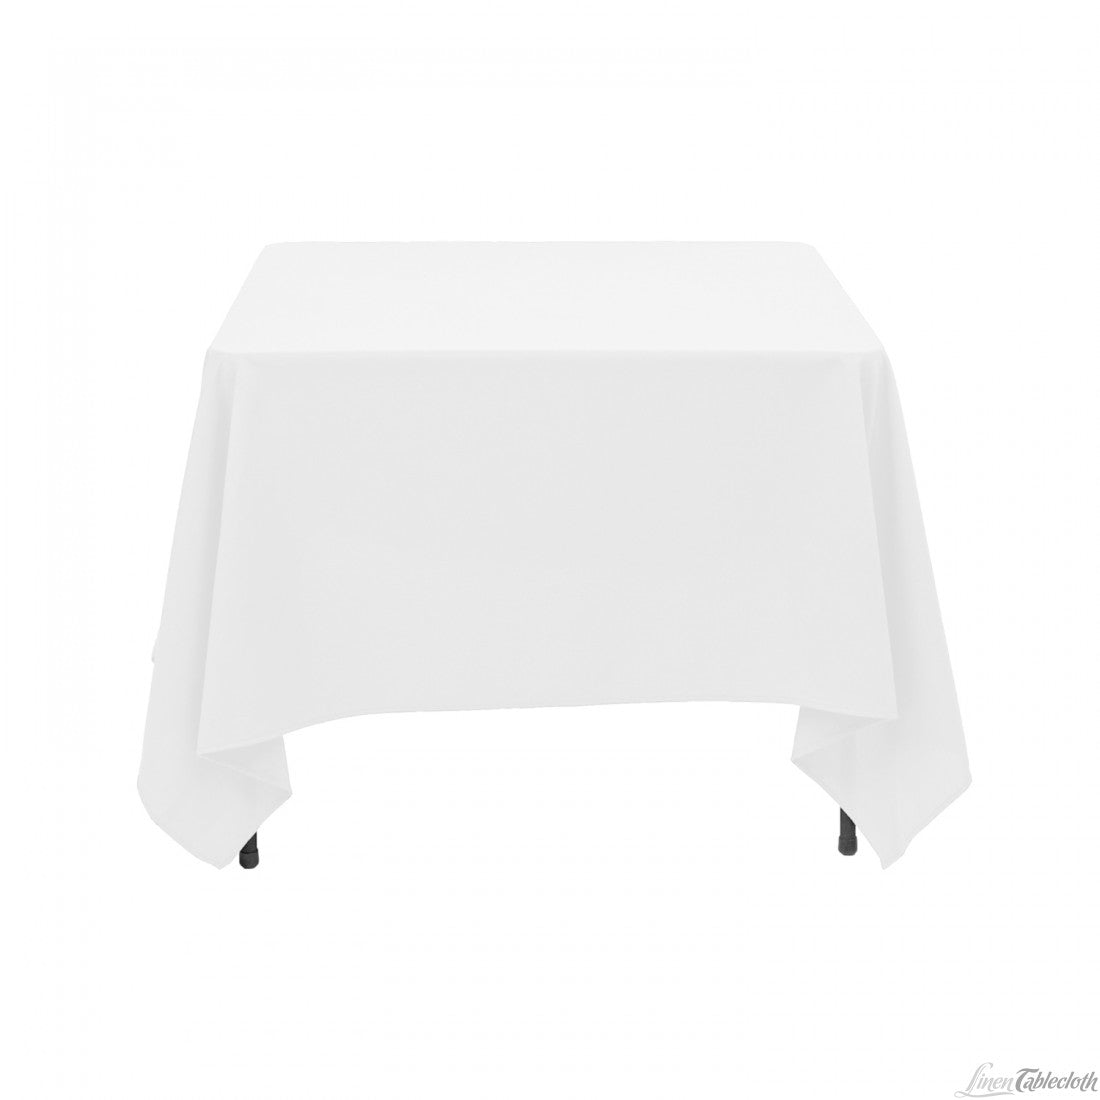 CHEFEQUIP TABLE CLOTH 1500 x 1500mm (WHITE) SQUARE  R137.50